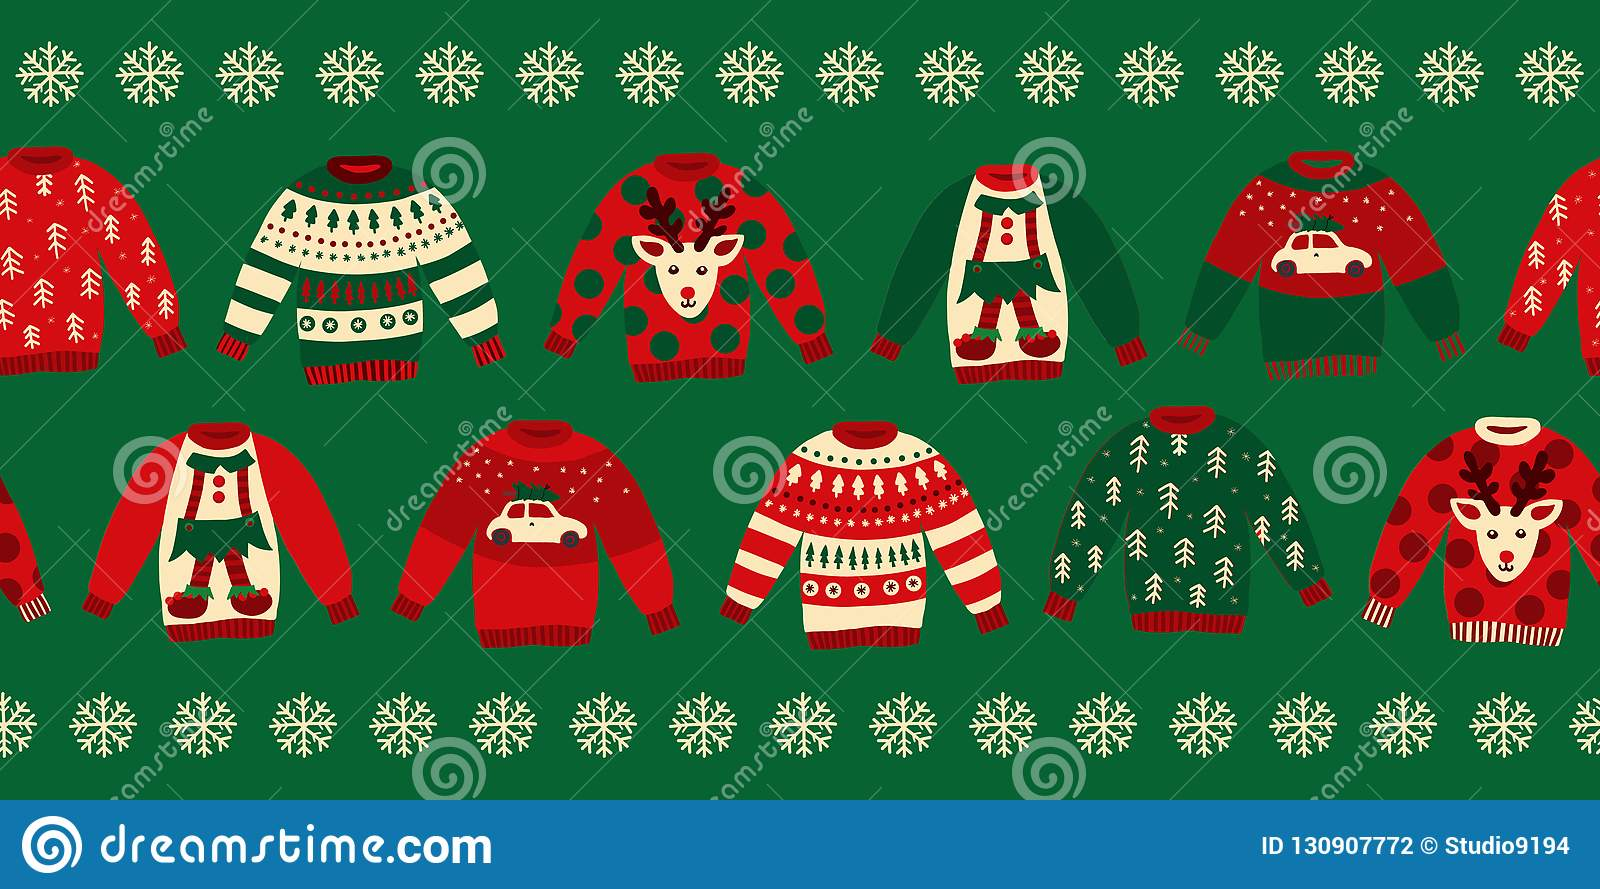 Ugly Christmas Sweaters Seamless Vector Border Stock Vector